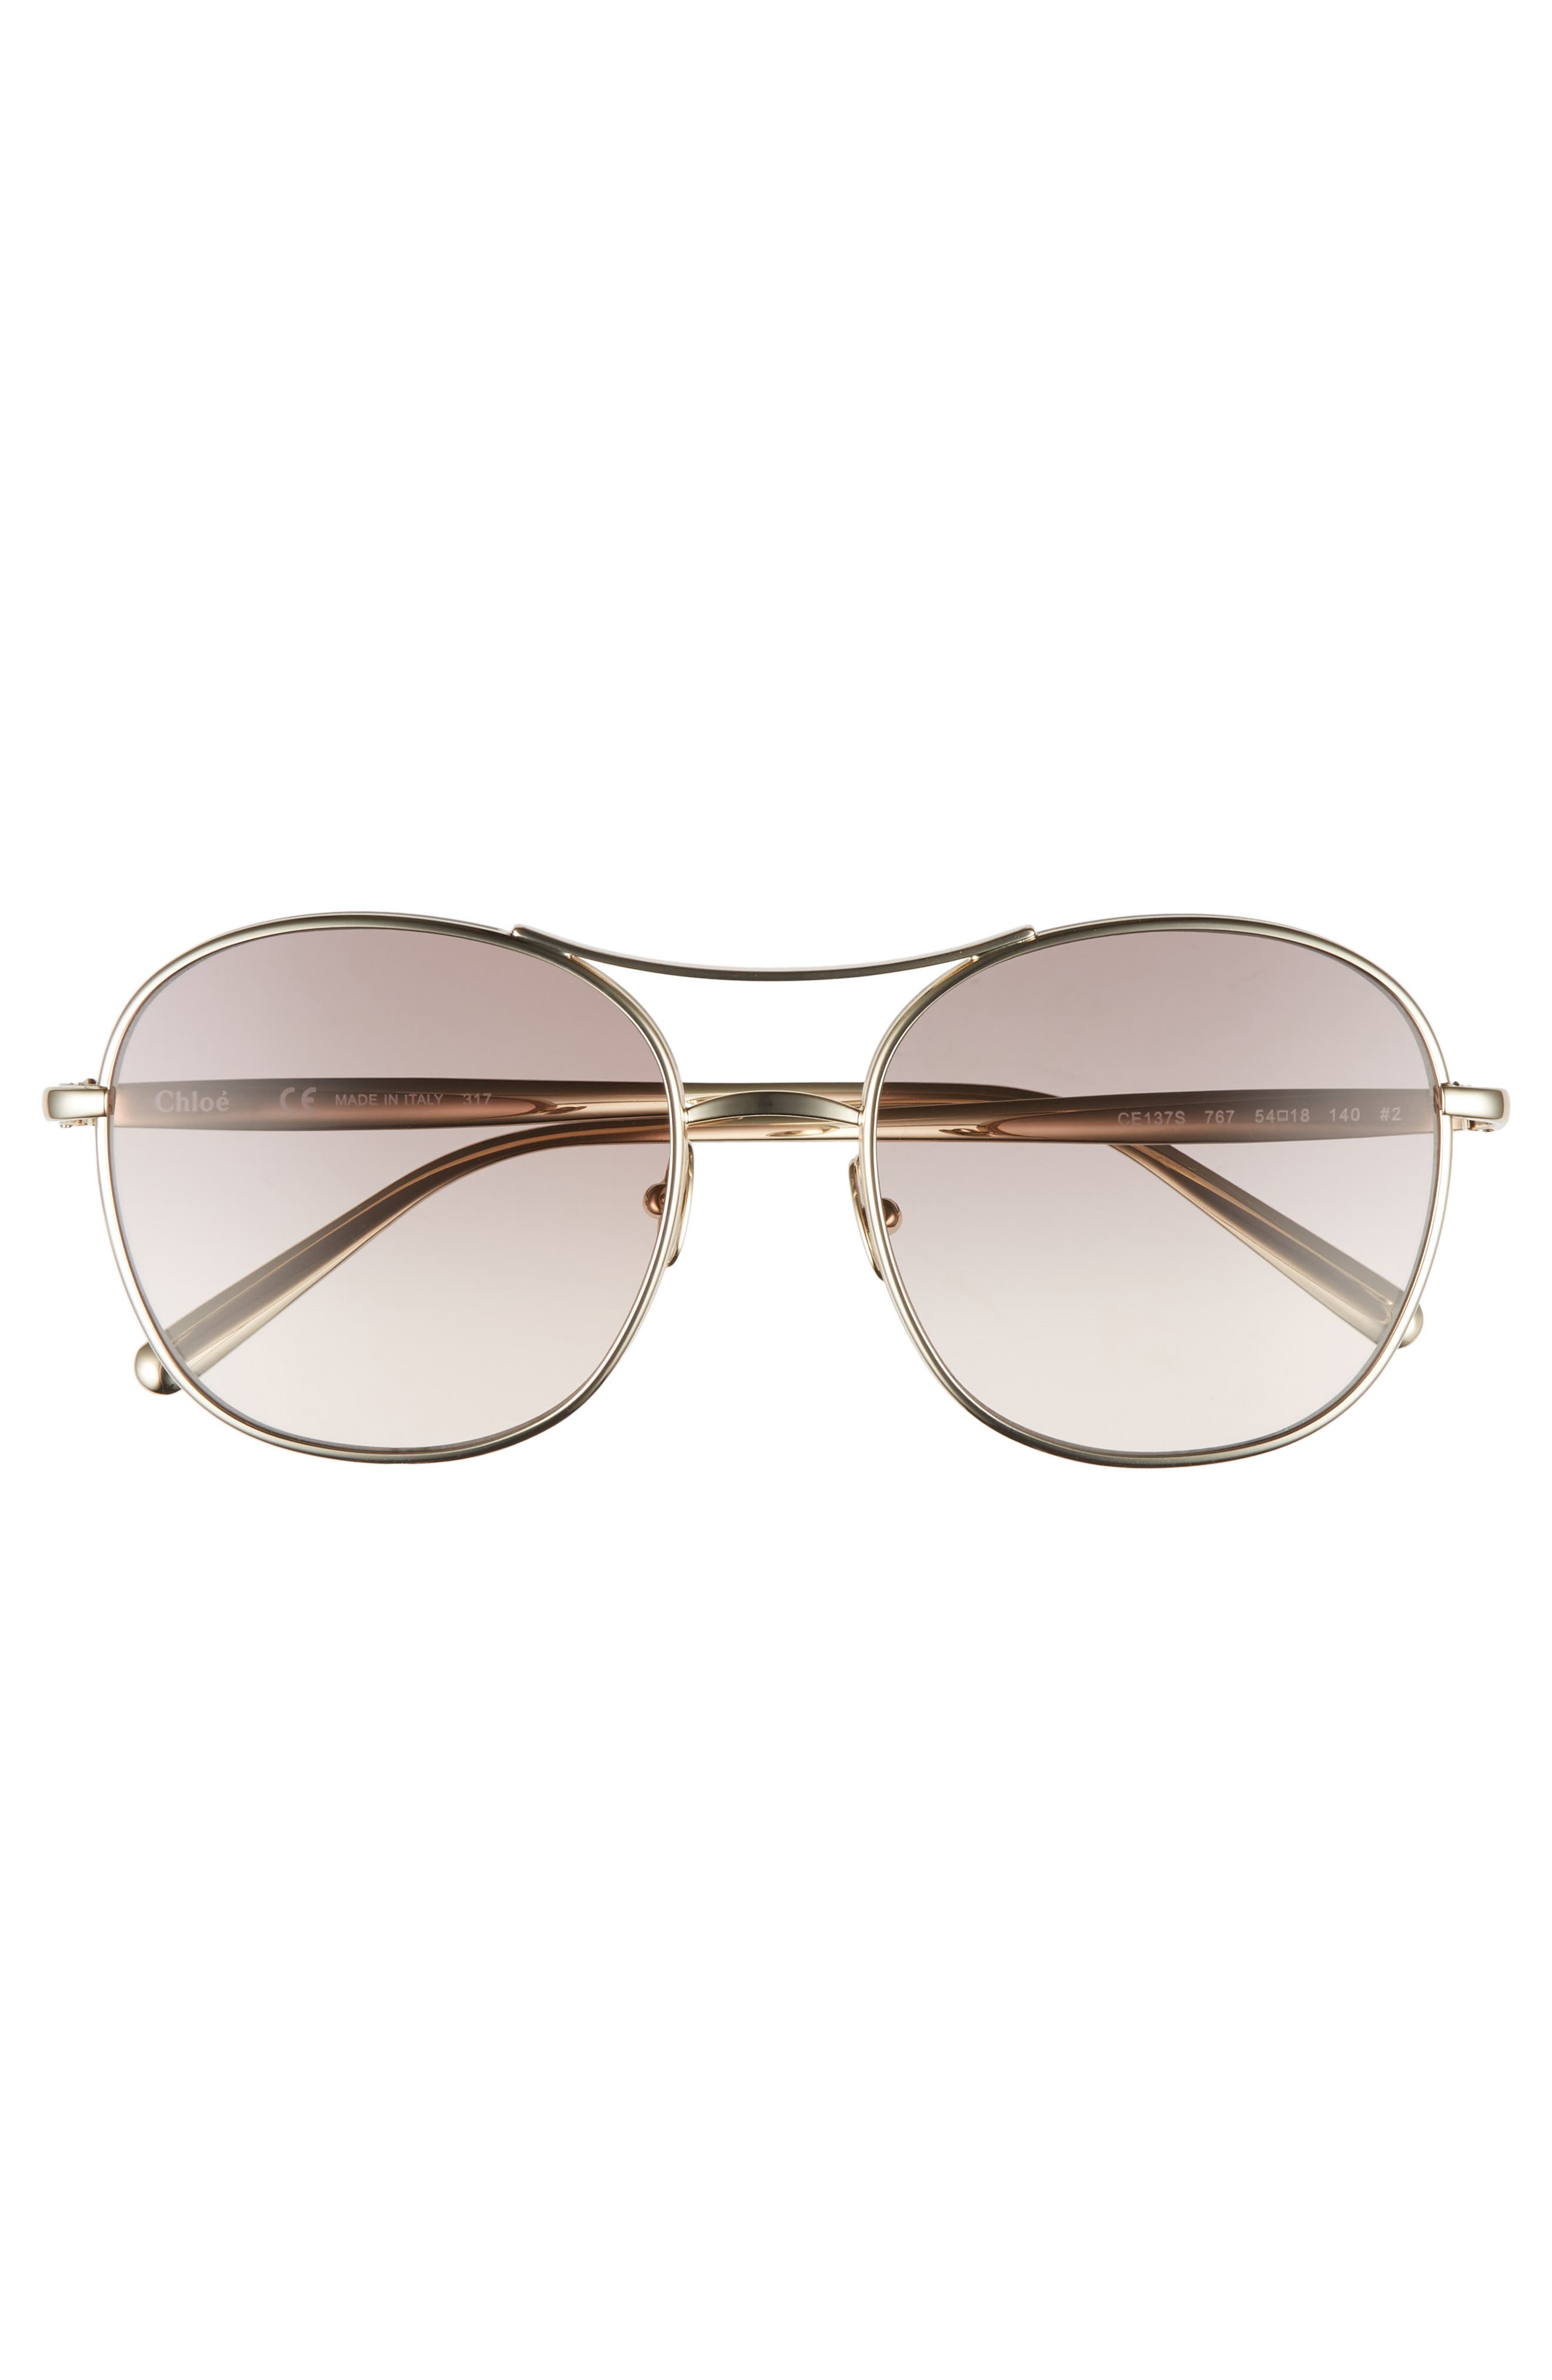 Alternate Image 5  - Chloé 54mm Aviator Sunglasses